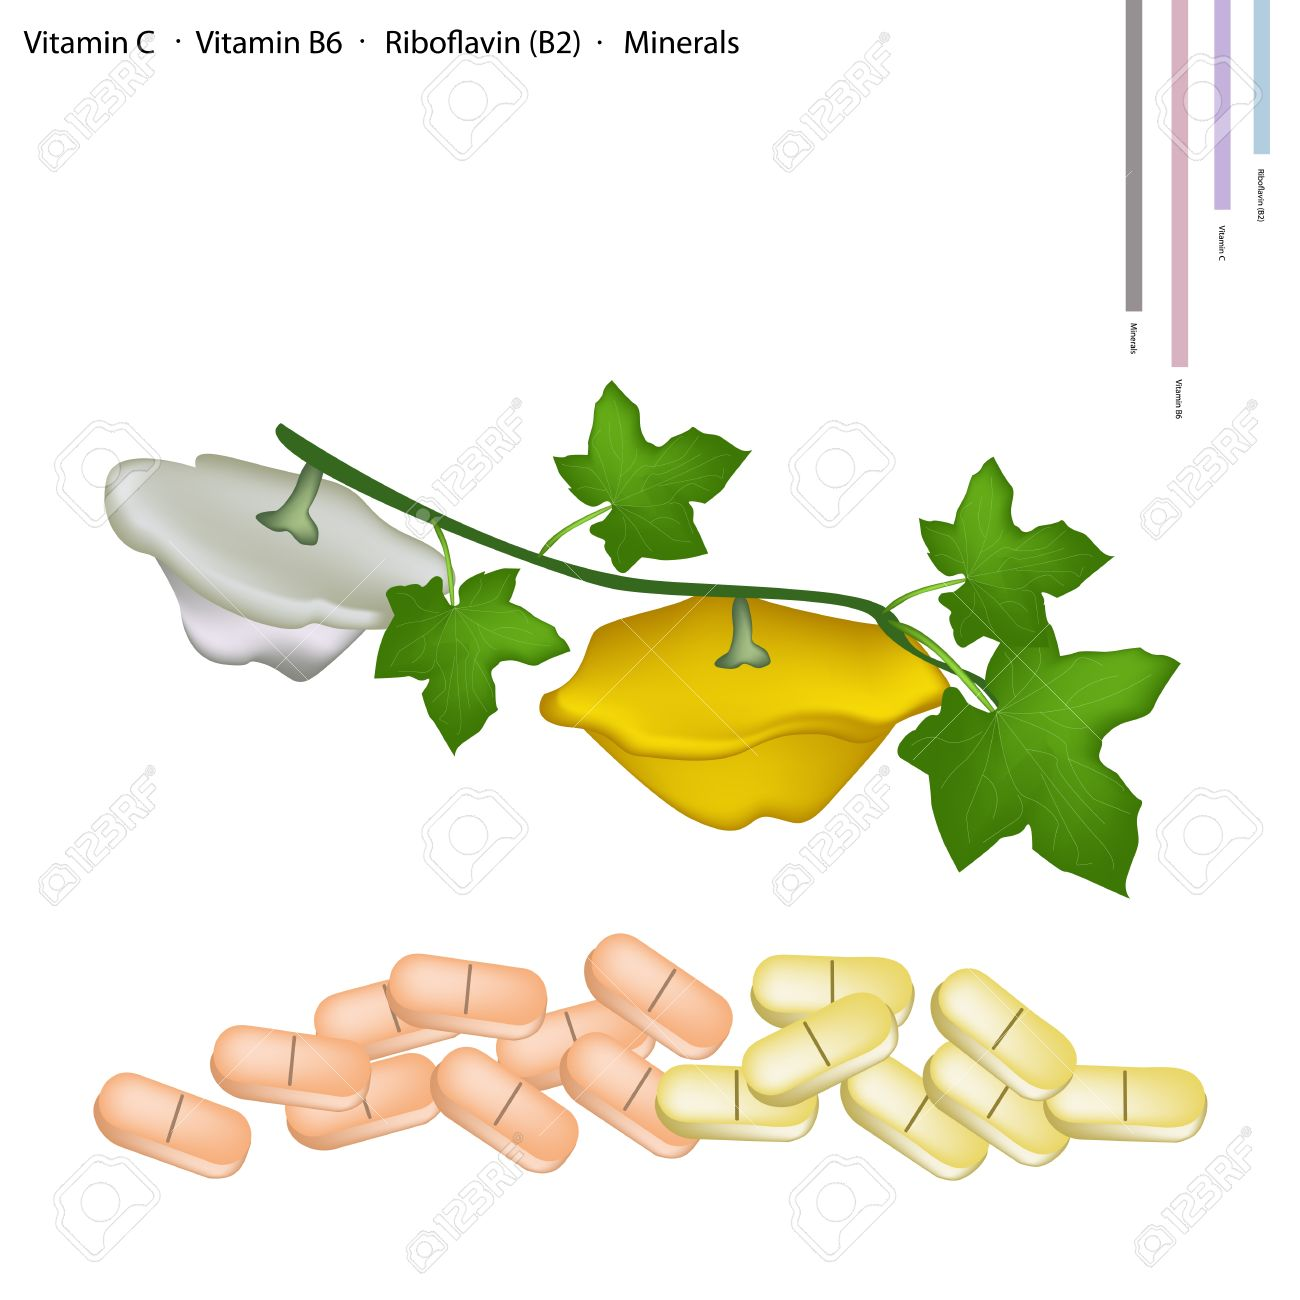 Healthcare Concept, Illustration Of Pattypan Squash Or Sunburst.